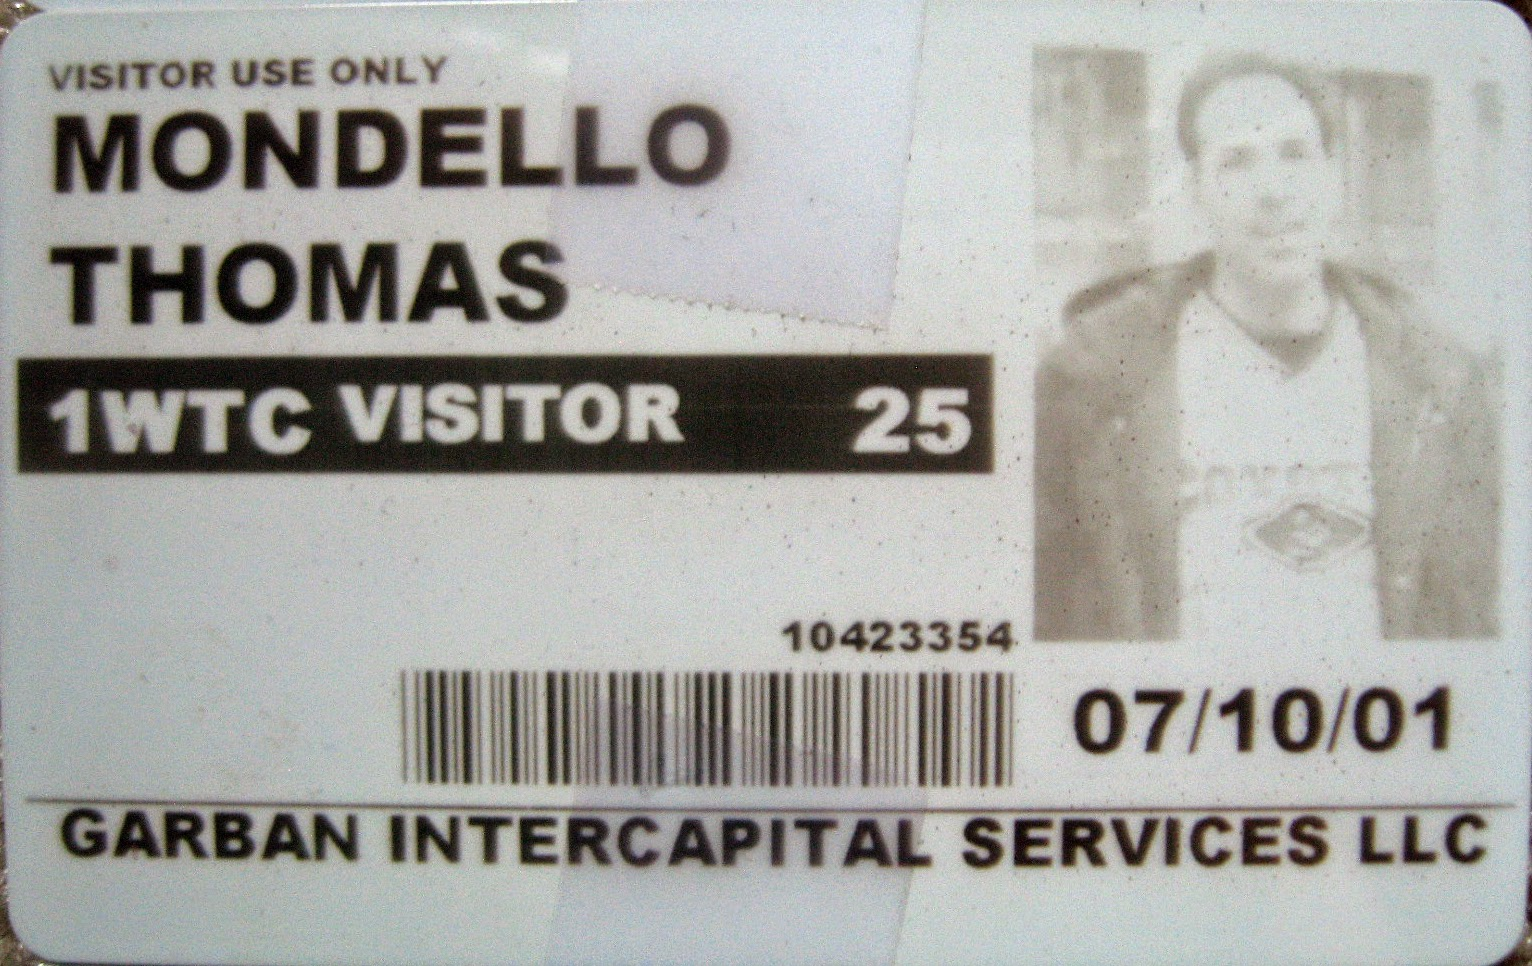 Tommy Mondello World Trade Center pass July 10, 2001